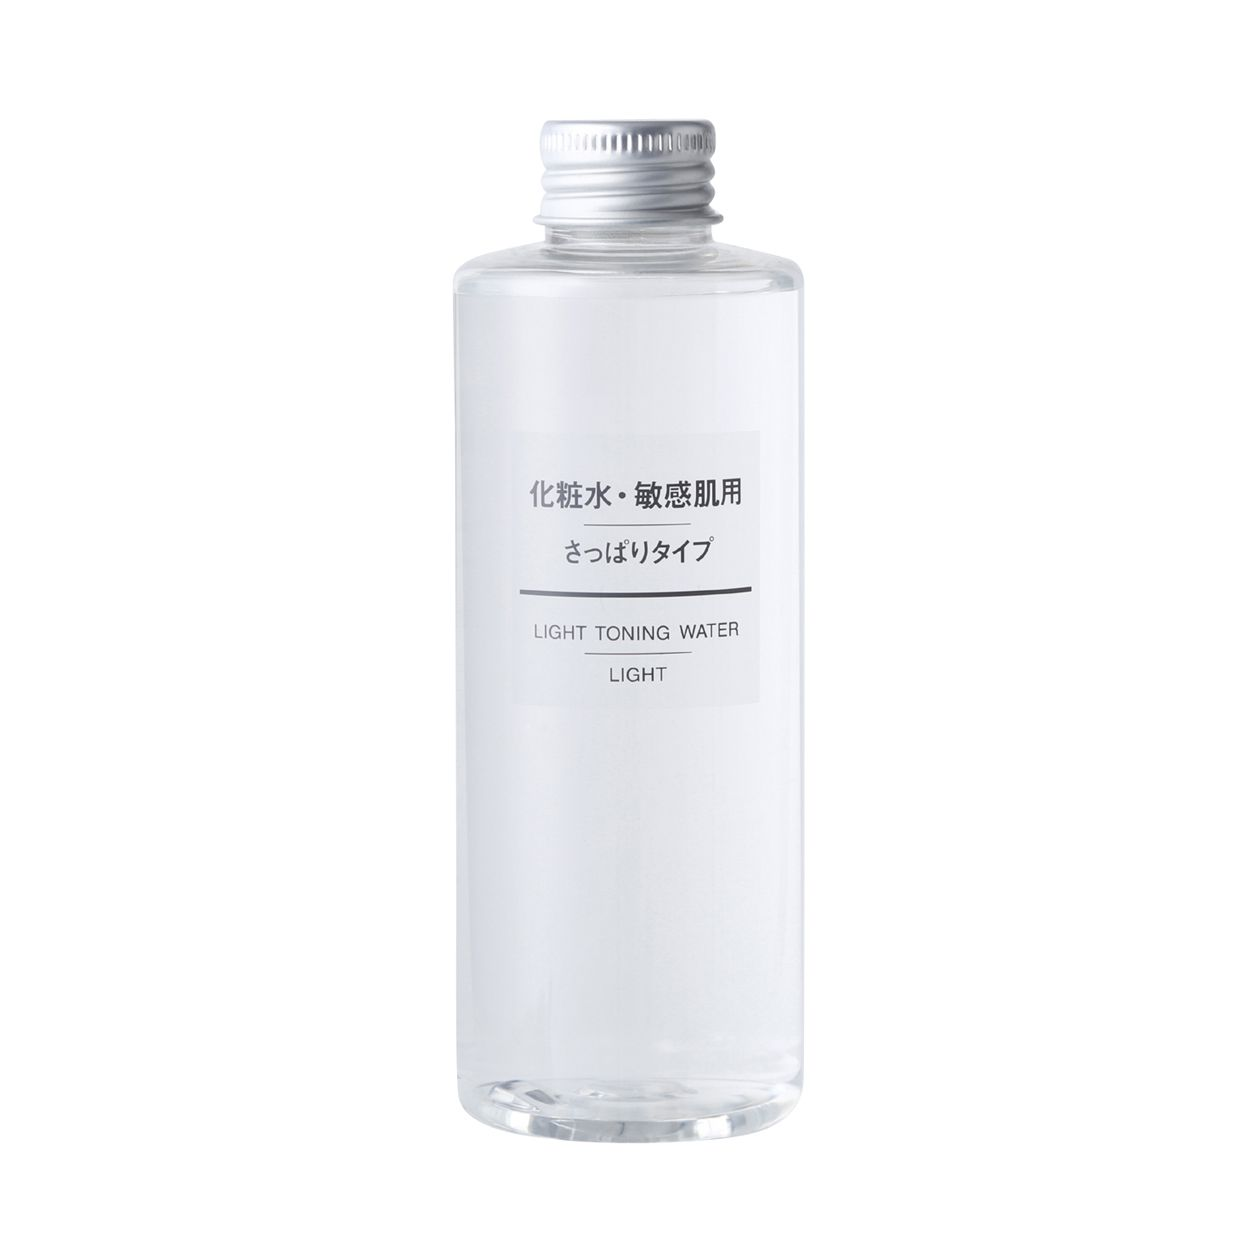 Muji Light Toning Water Light 200ml